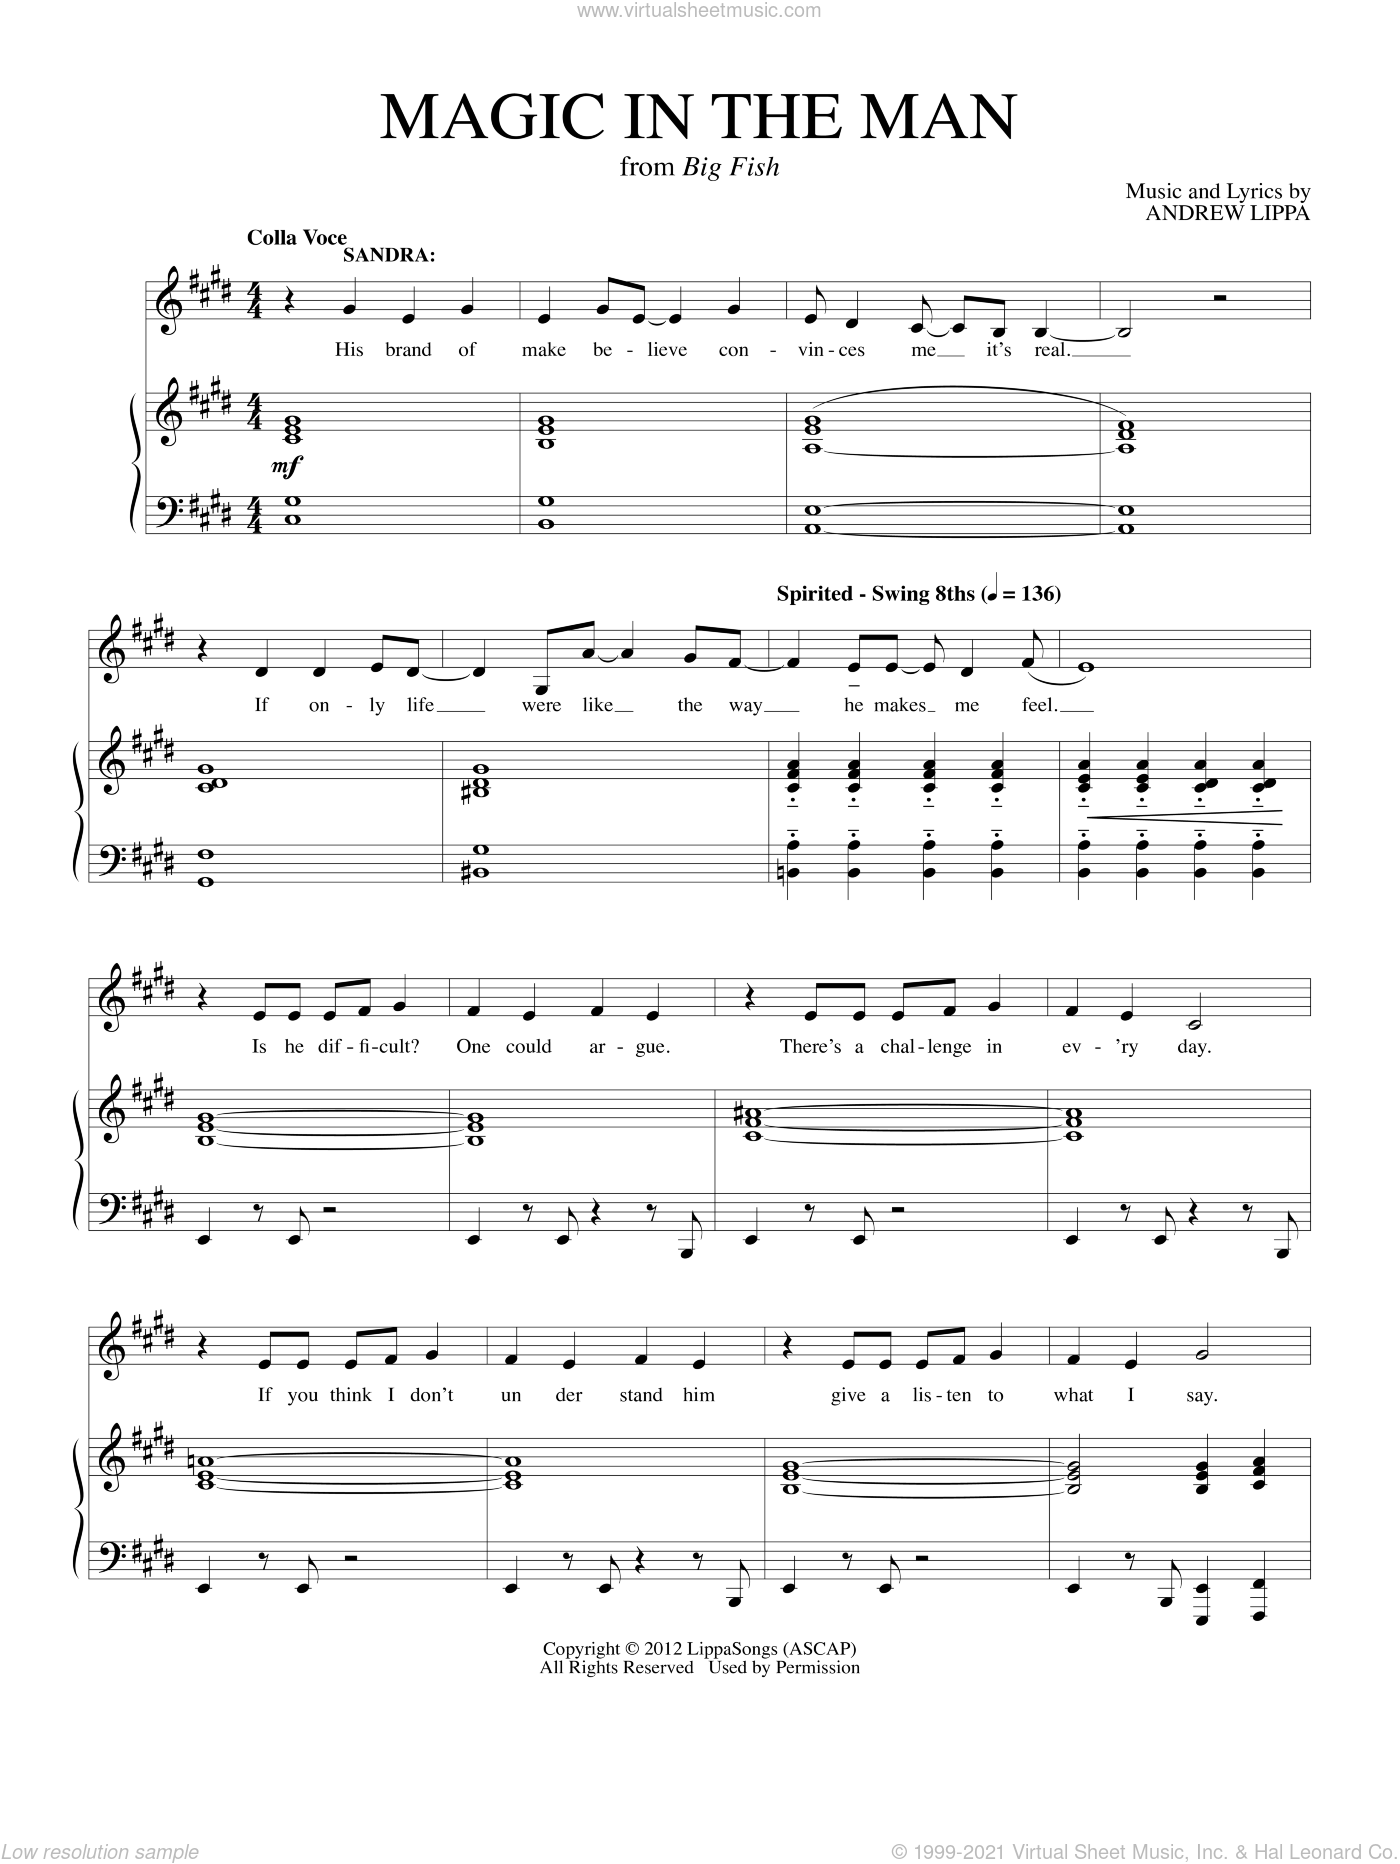 Magic In The Man sheet music for voice and piano by Andrew Lippa, intermediate skill level